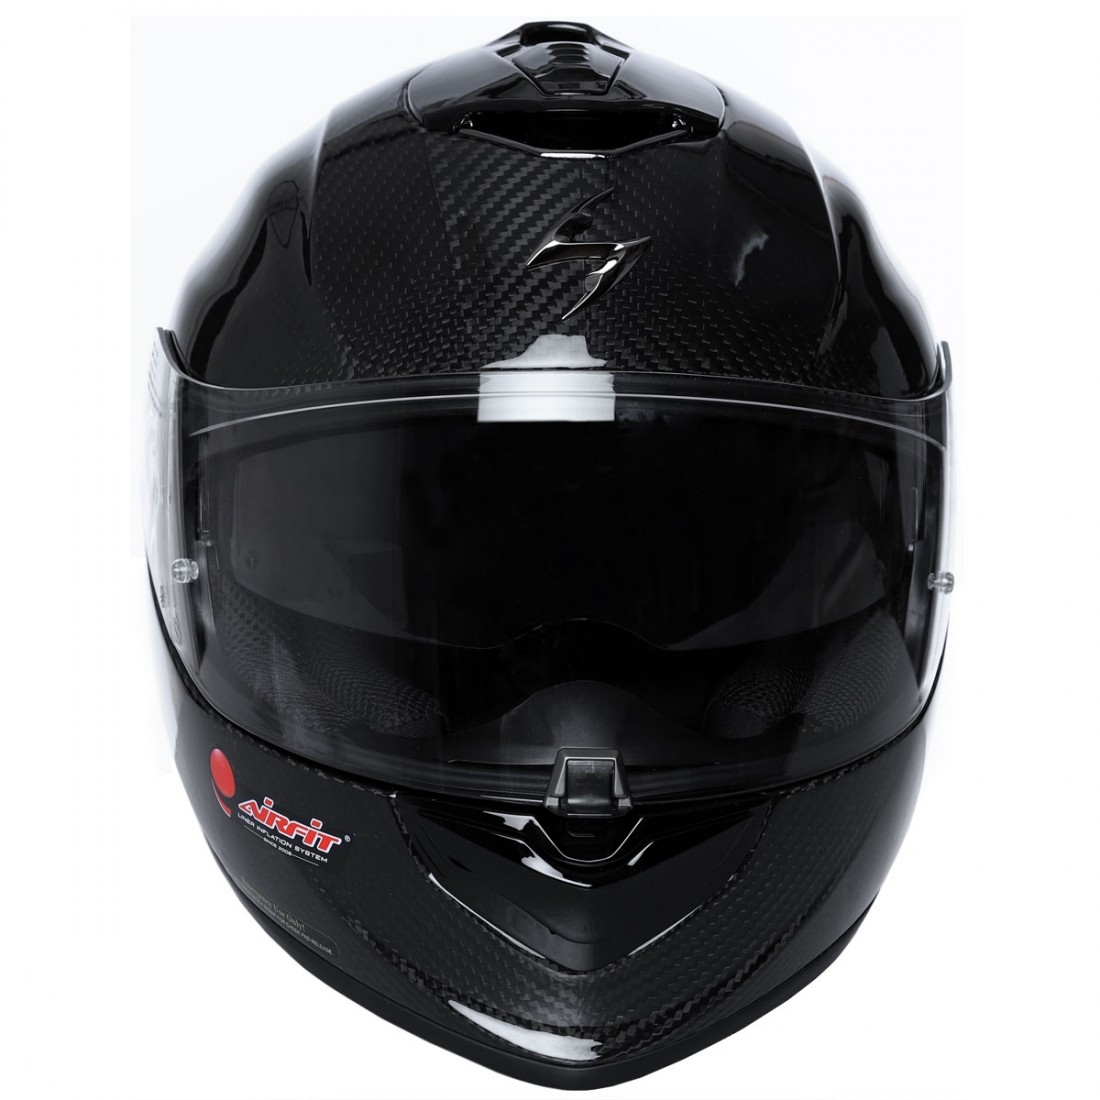 Casco SCORPION Exo-1400 Carbon Air Solid · Motocard d0019a13f2f